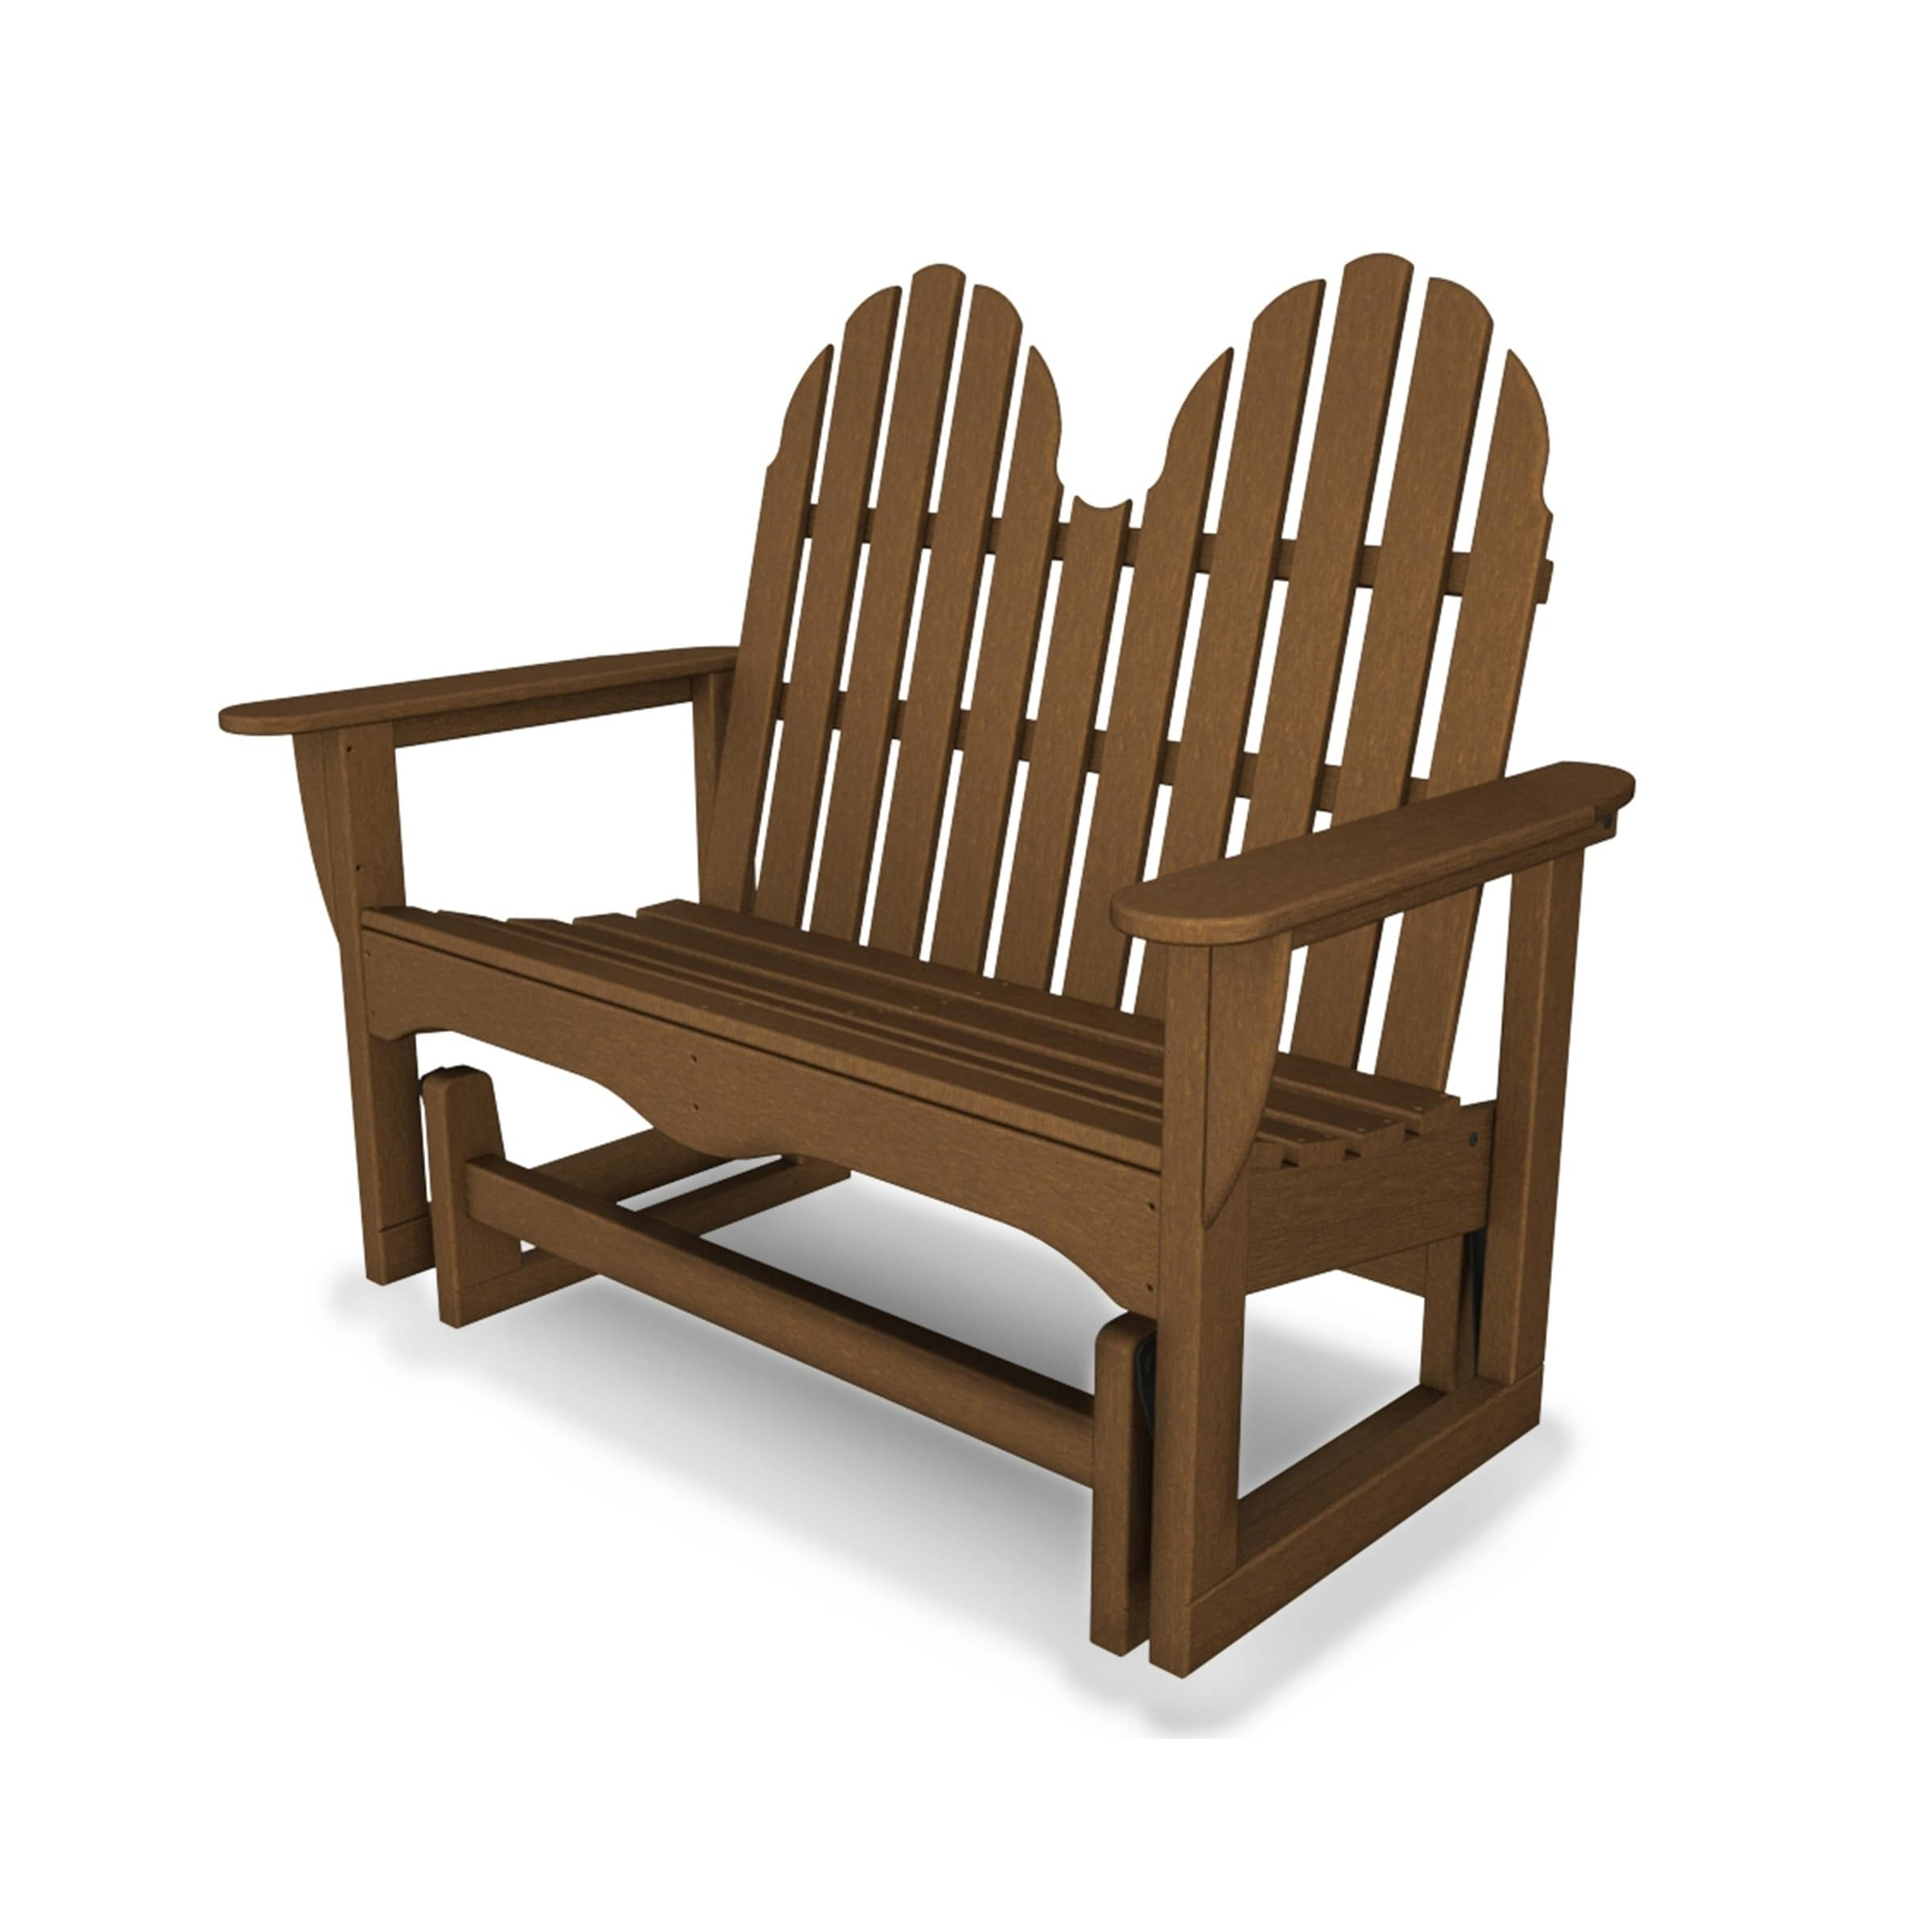 Astounding Polywood Classic Adirondack 48 Outdoor Glider Bench Gmtry Best Dining Table And Chair Ideas Images Gmtryco